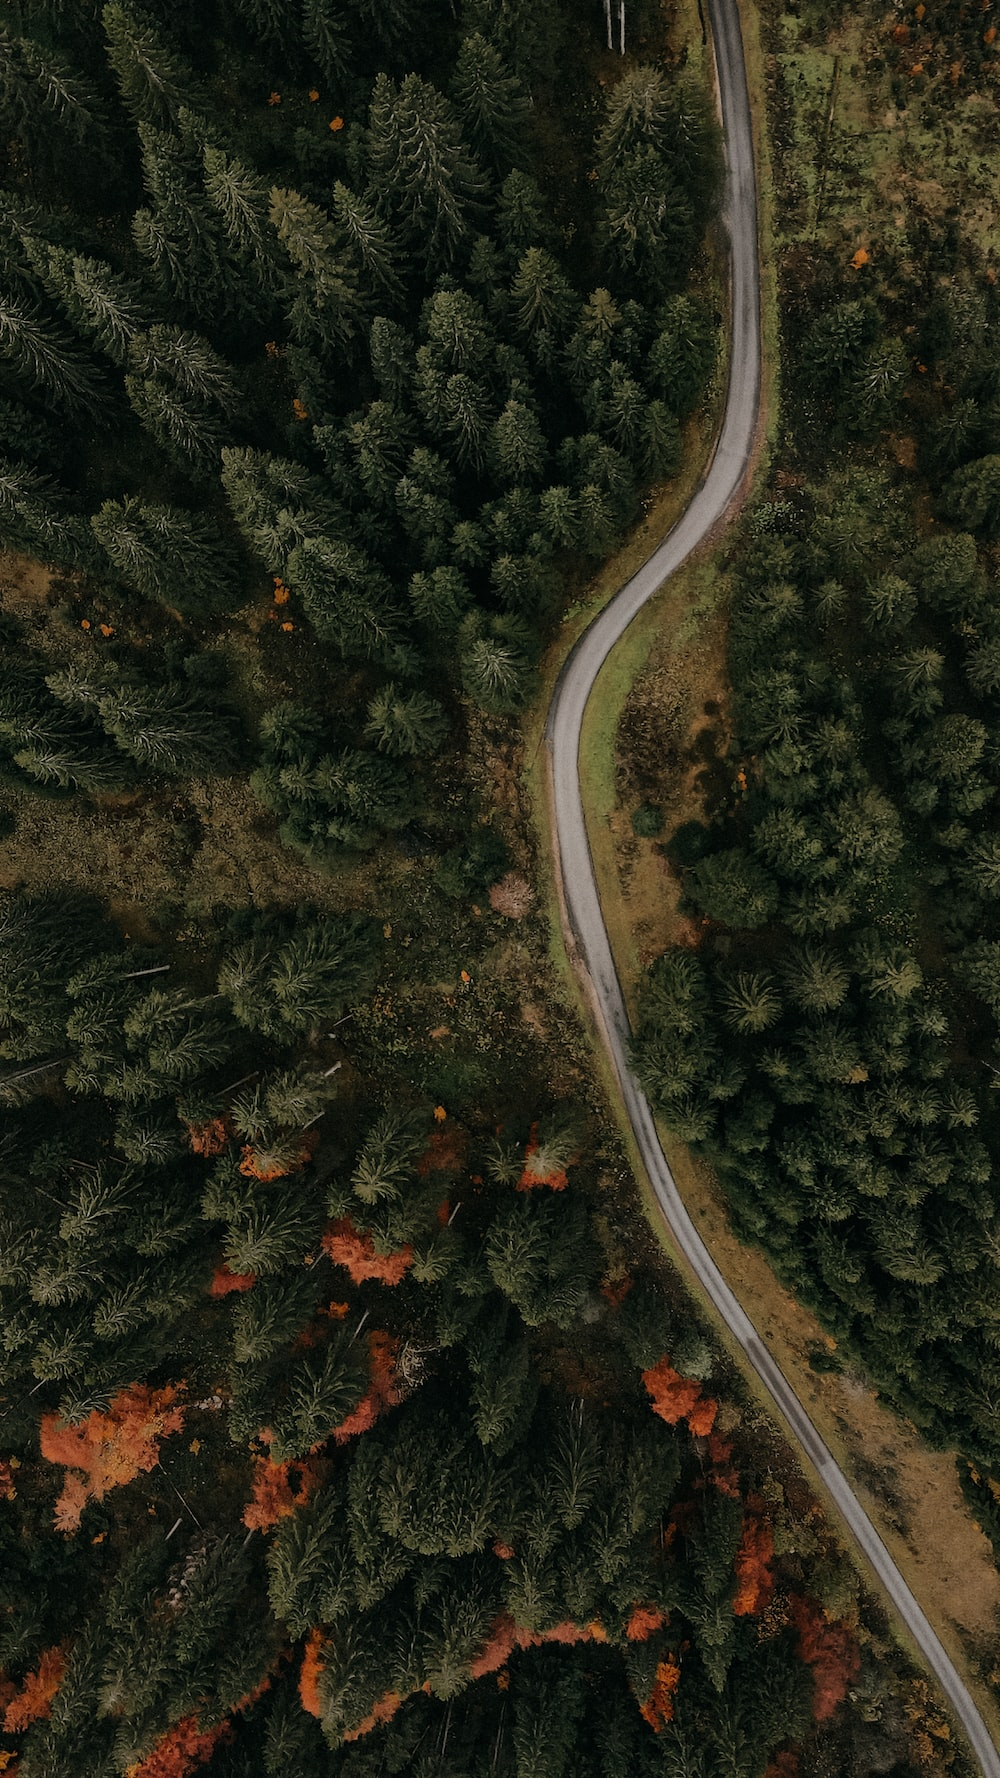 birds eye view of forest